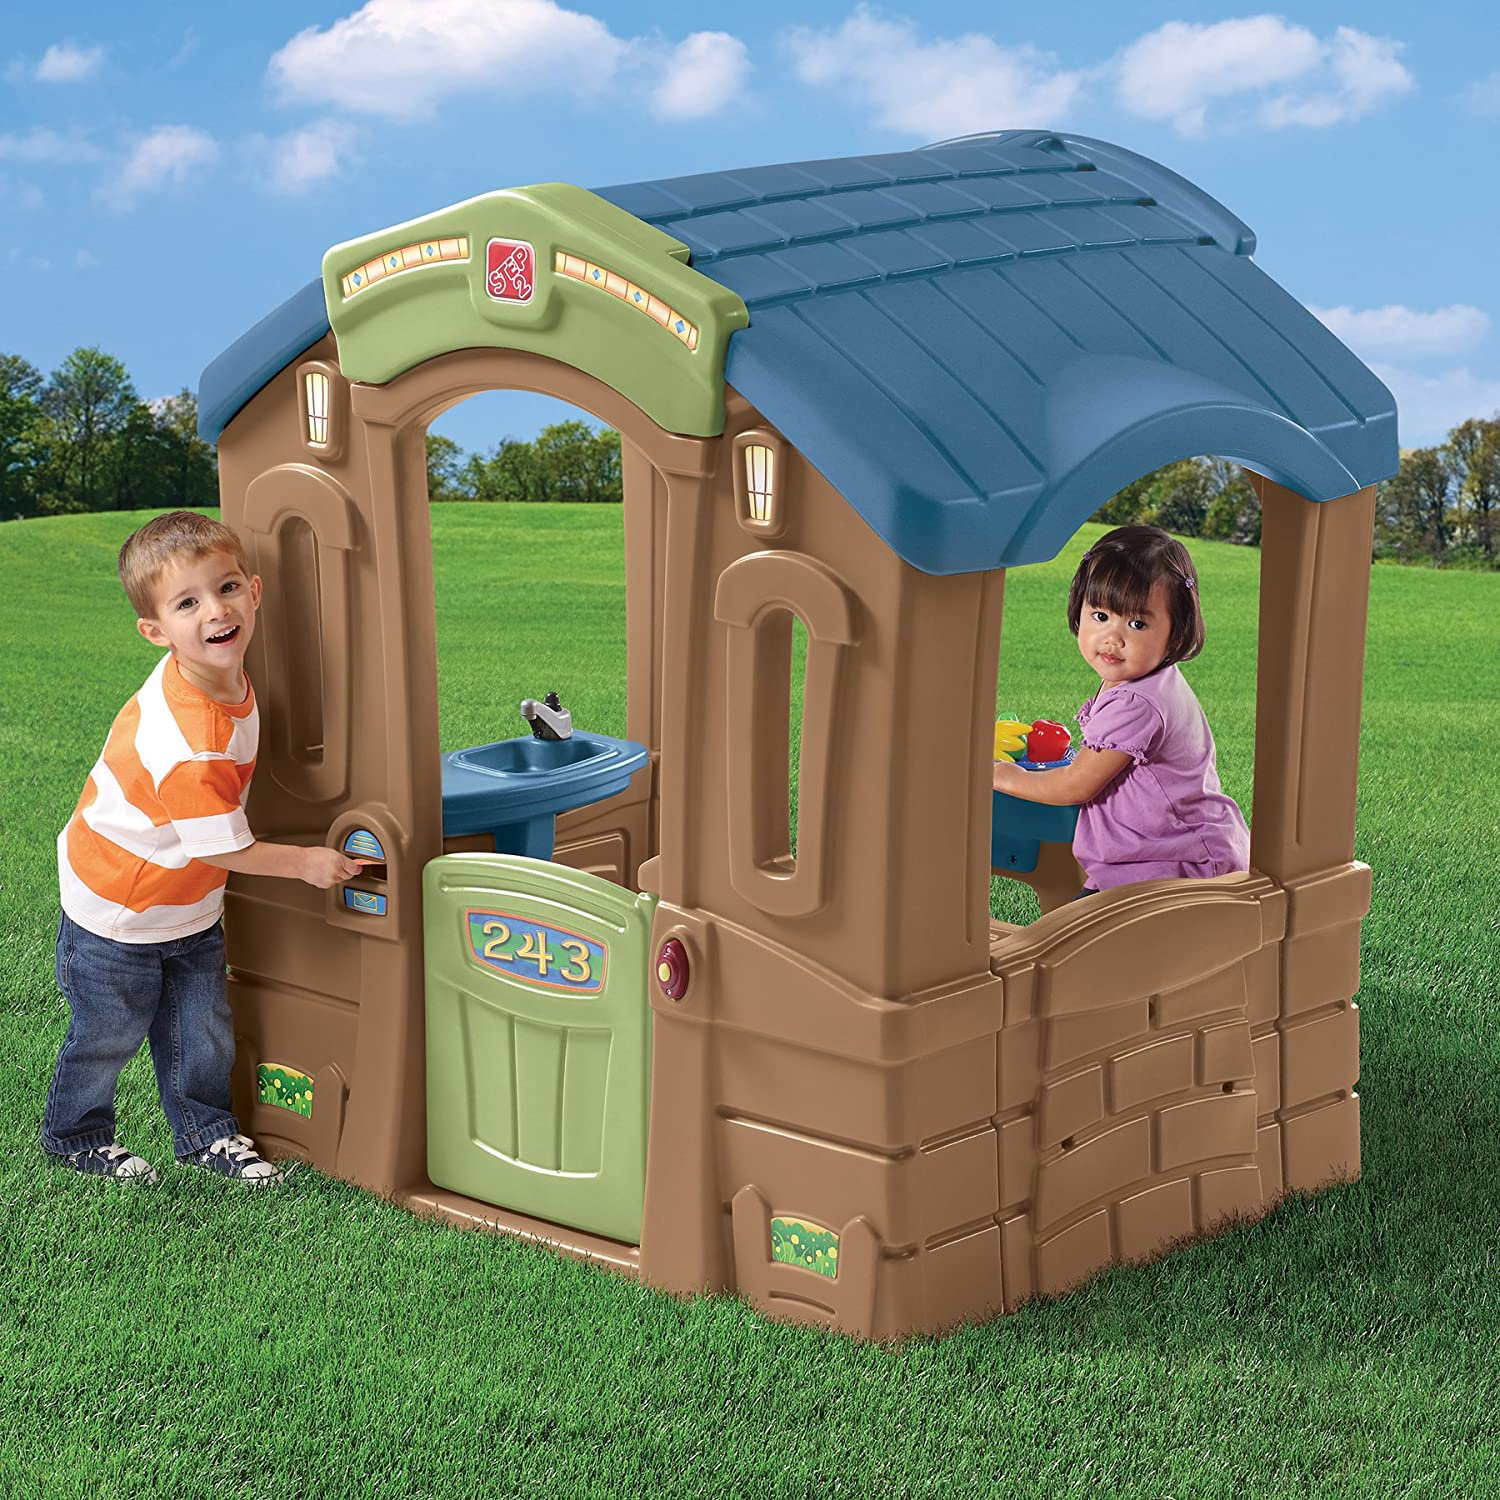 Amazon.com: Step2 Play Up Picnic Cottage Playhouse for Toddlers ...